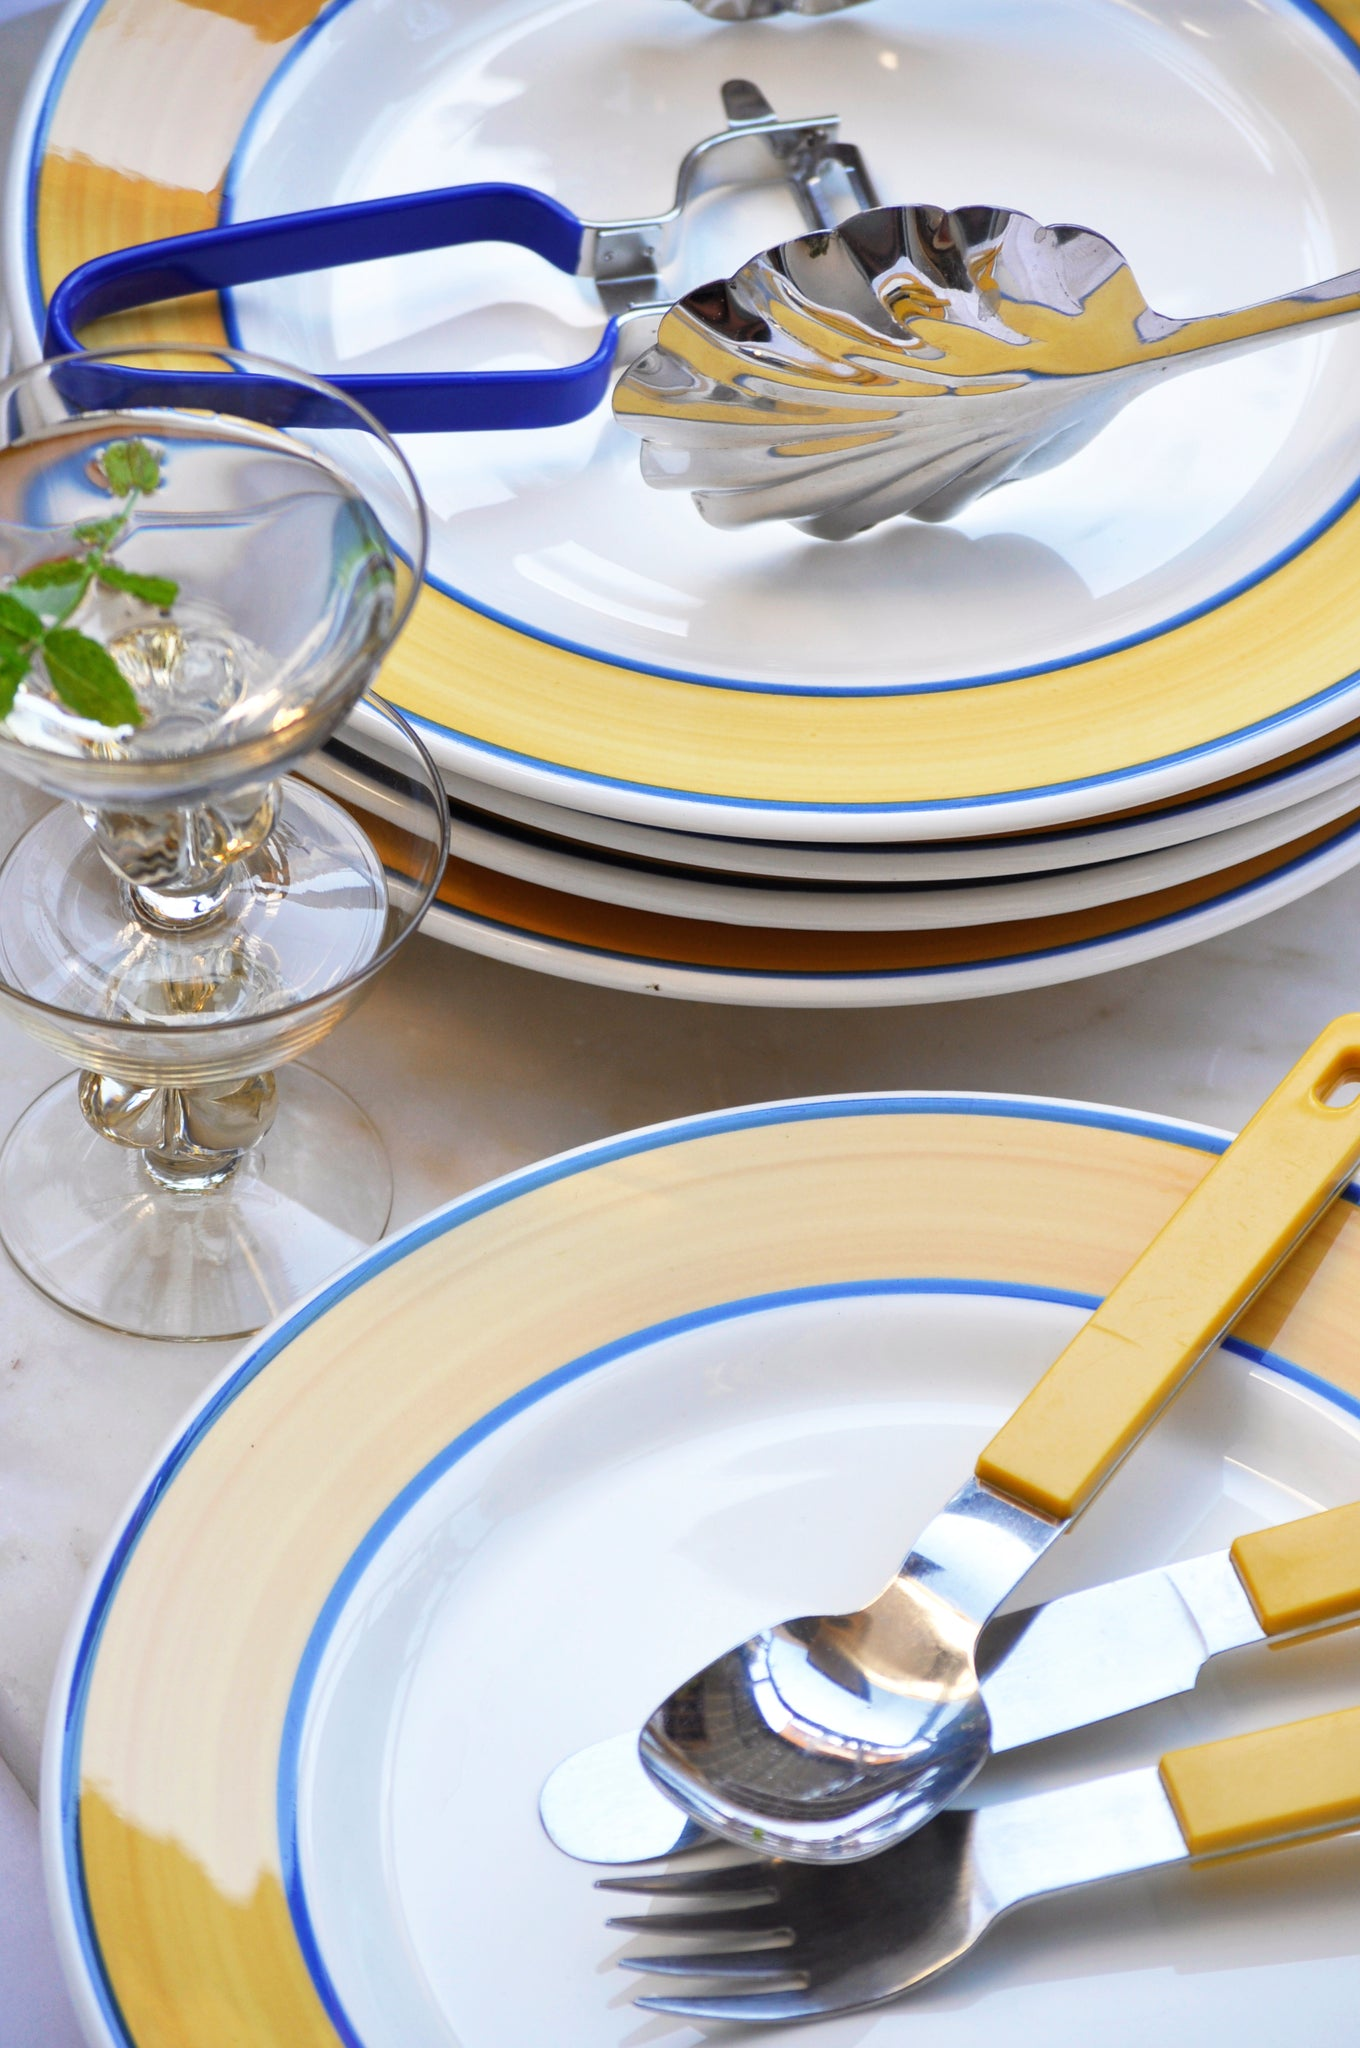 VINTAGE ITALIAN YELLOW AND BLUE STRIPE DINNER PLATES - SET OF 5